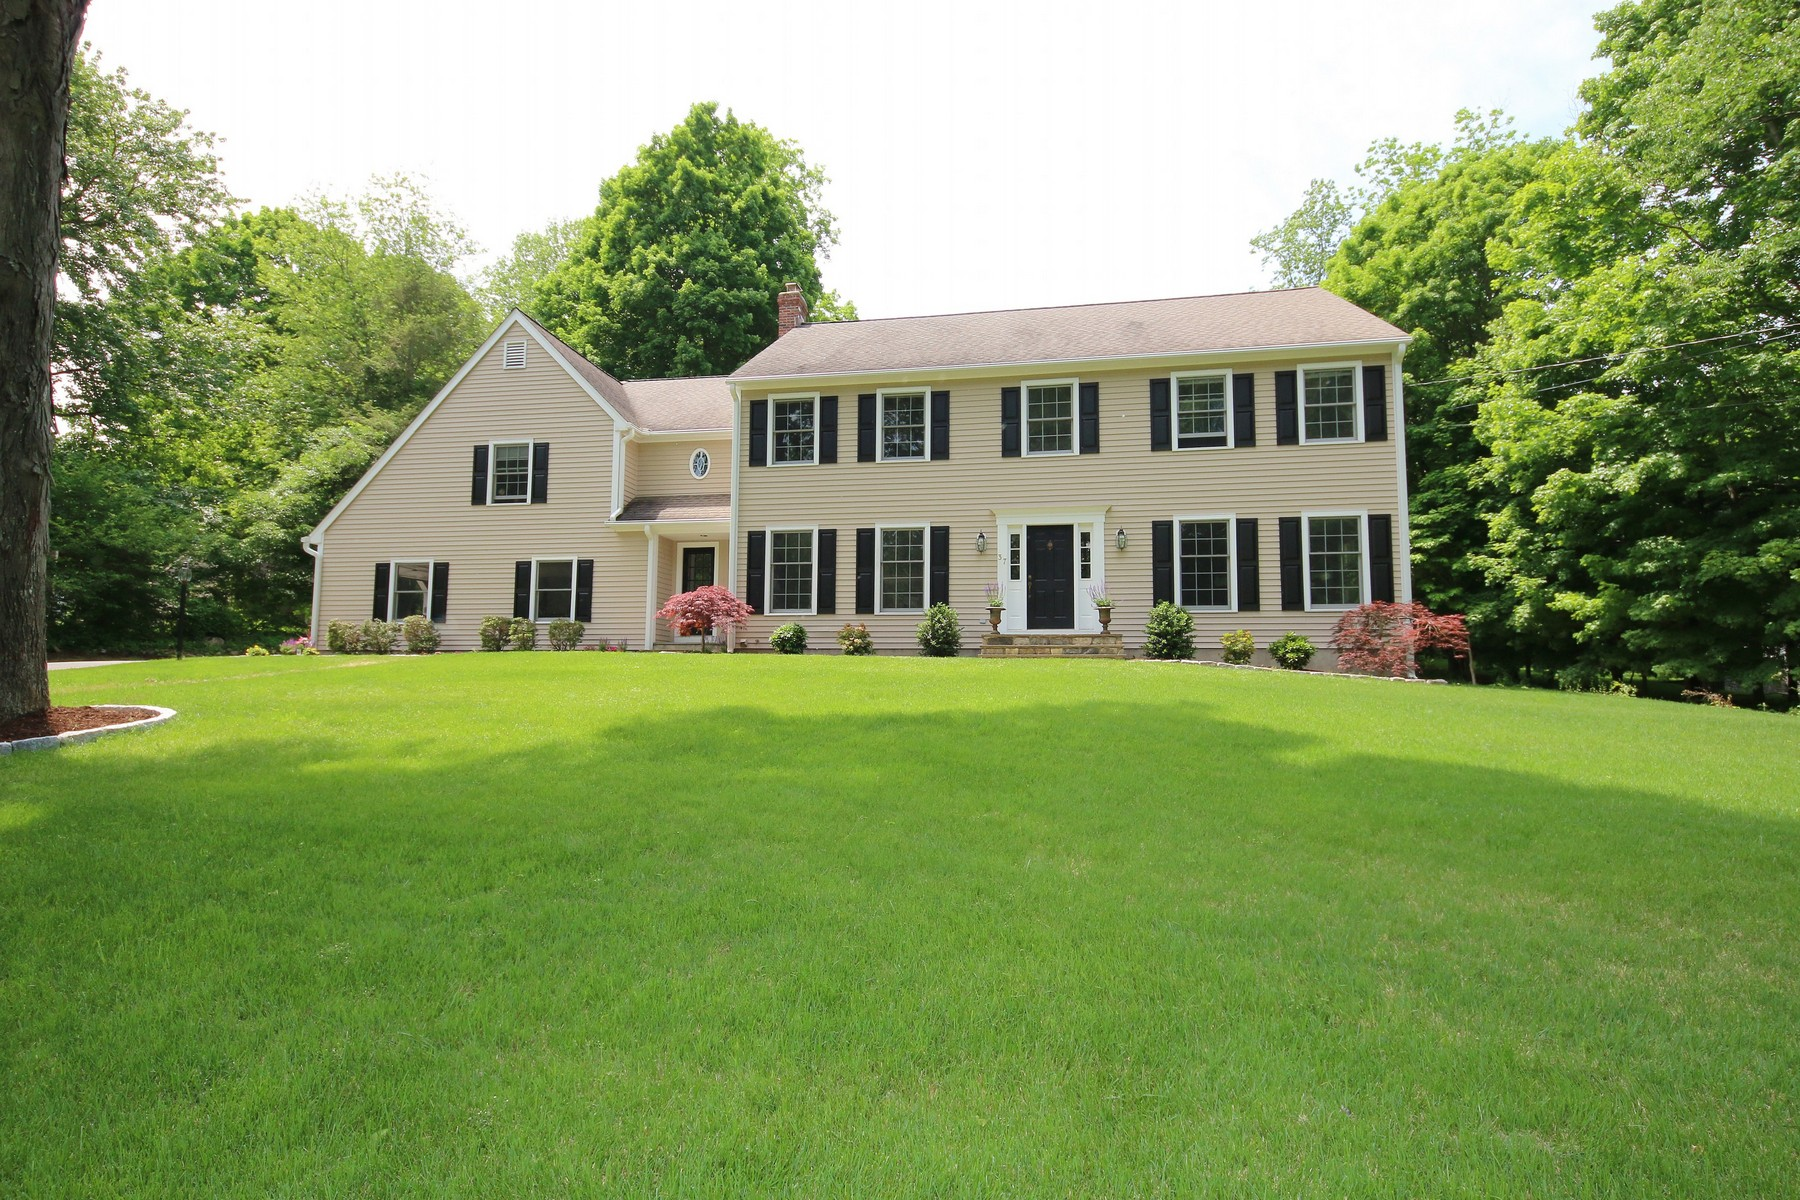 Vivienda unifamiliar por un Venta en Like New Colonial 37 Jefferson Drive Ridgefield, Connecticut, 06877 Estados Unidos